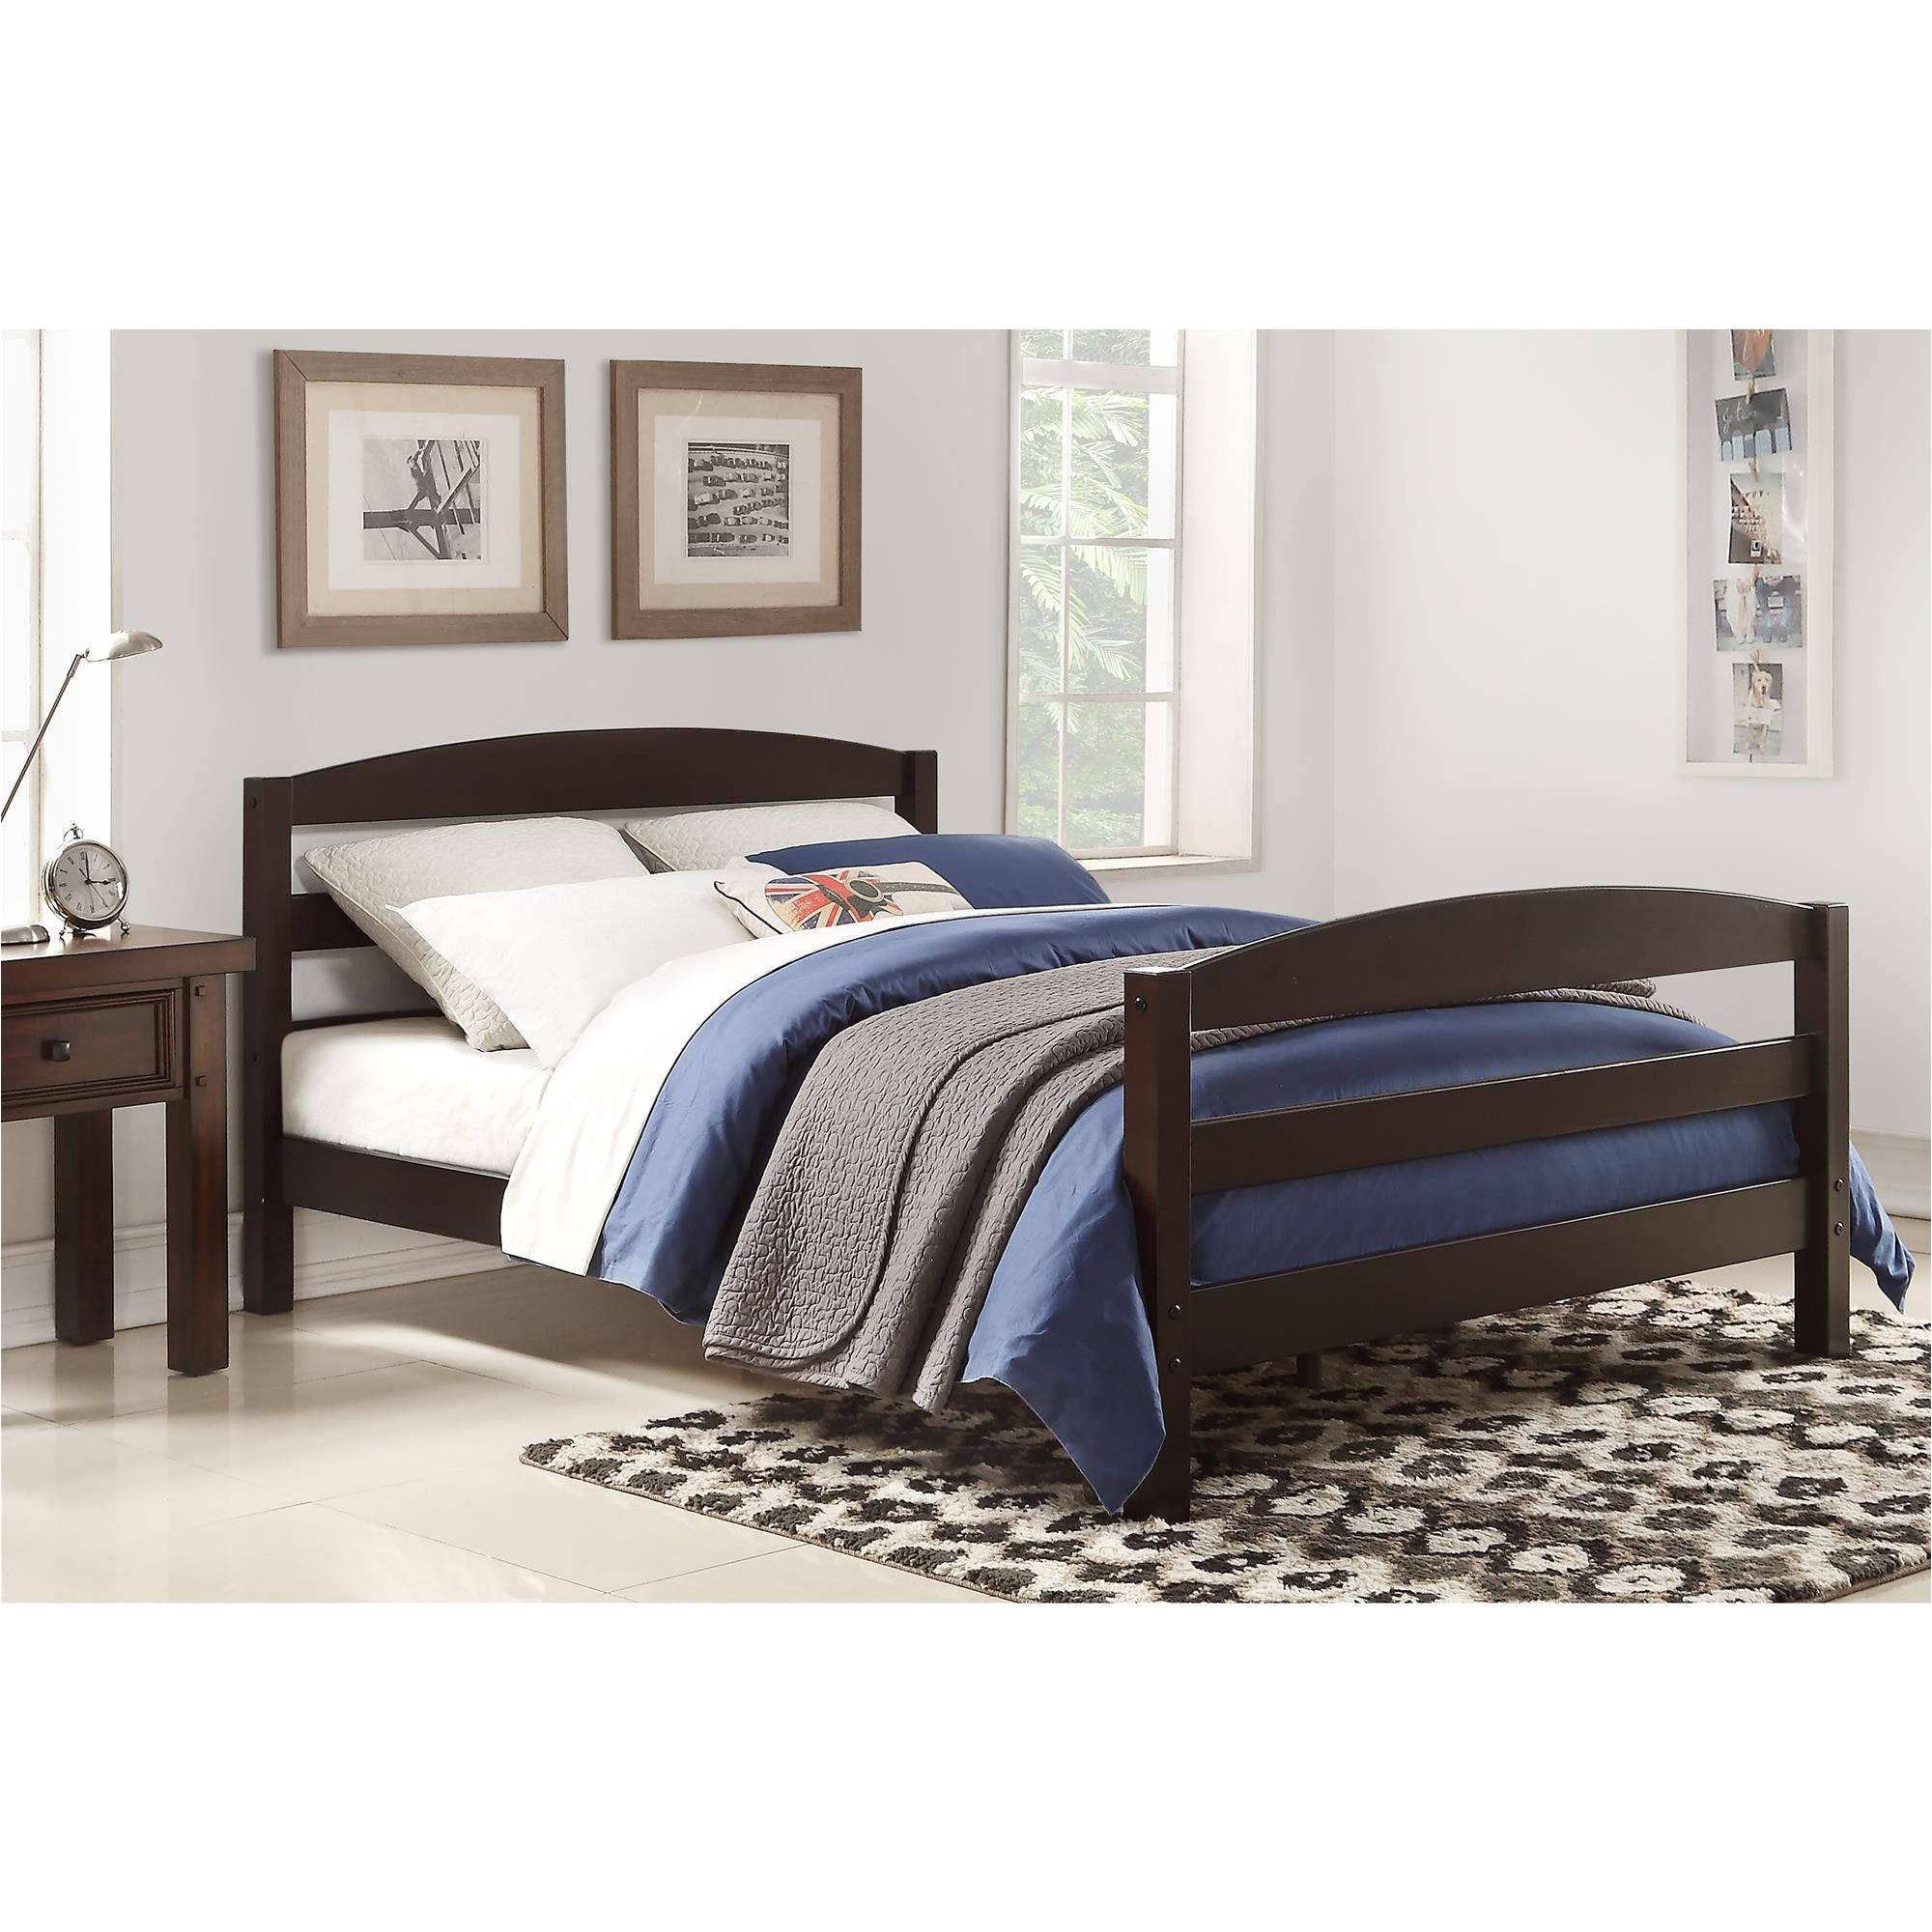 extra strong bed frame awesome better homes and gardens leighton full bed multiple colors of extra